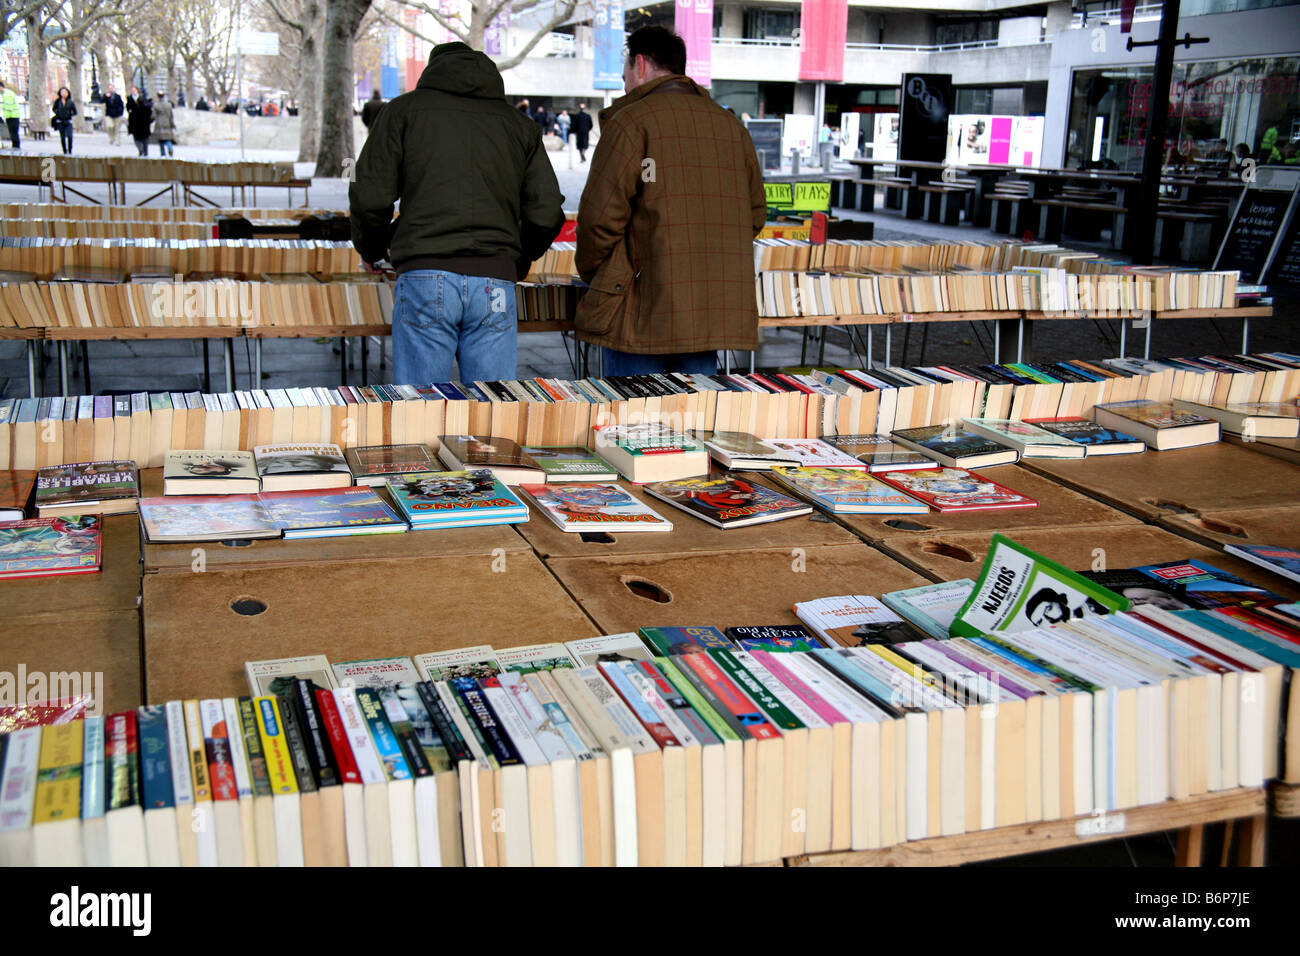 Book market on South Bank, London - Stock Image